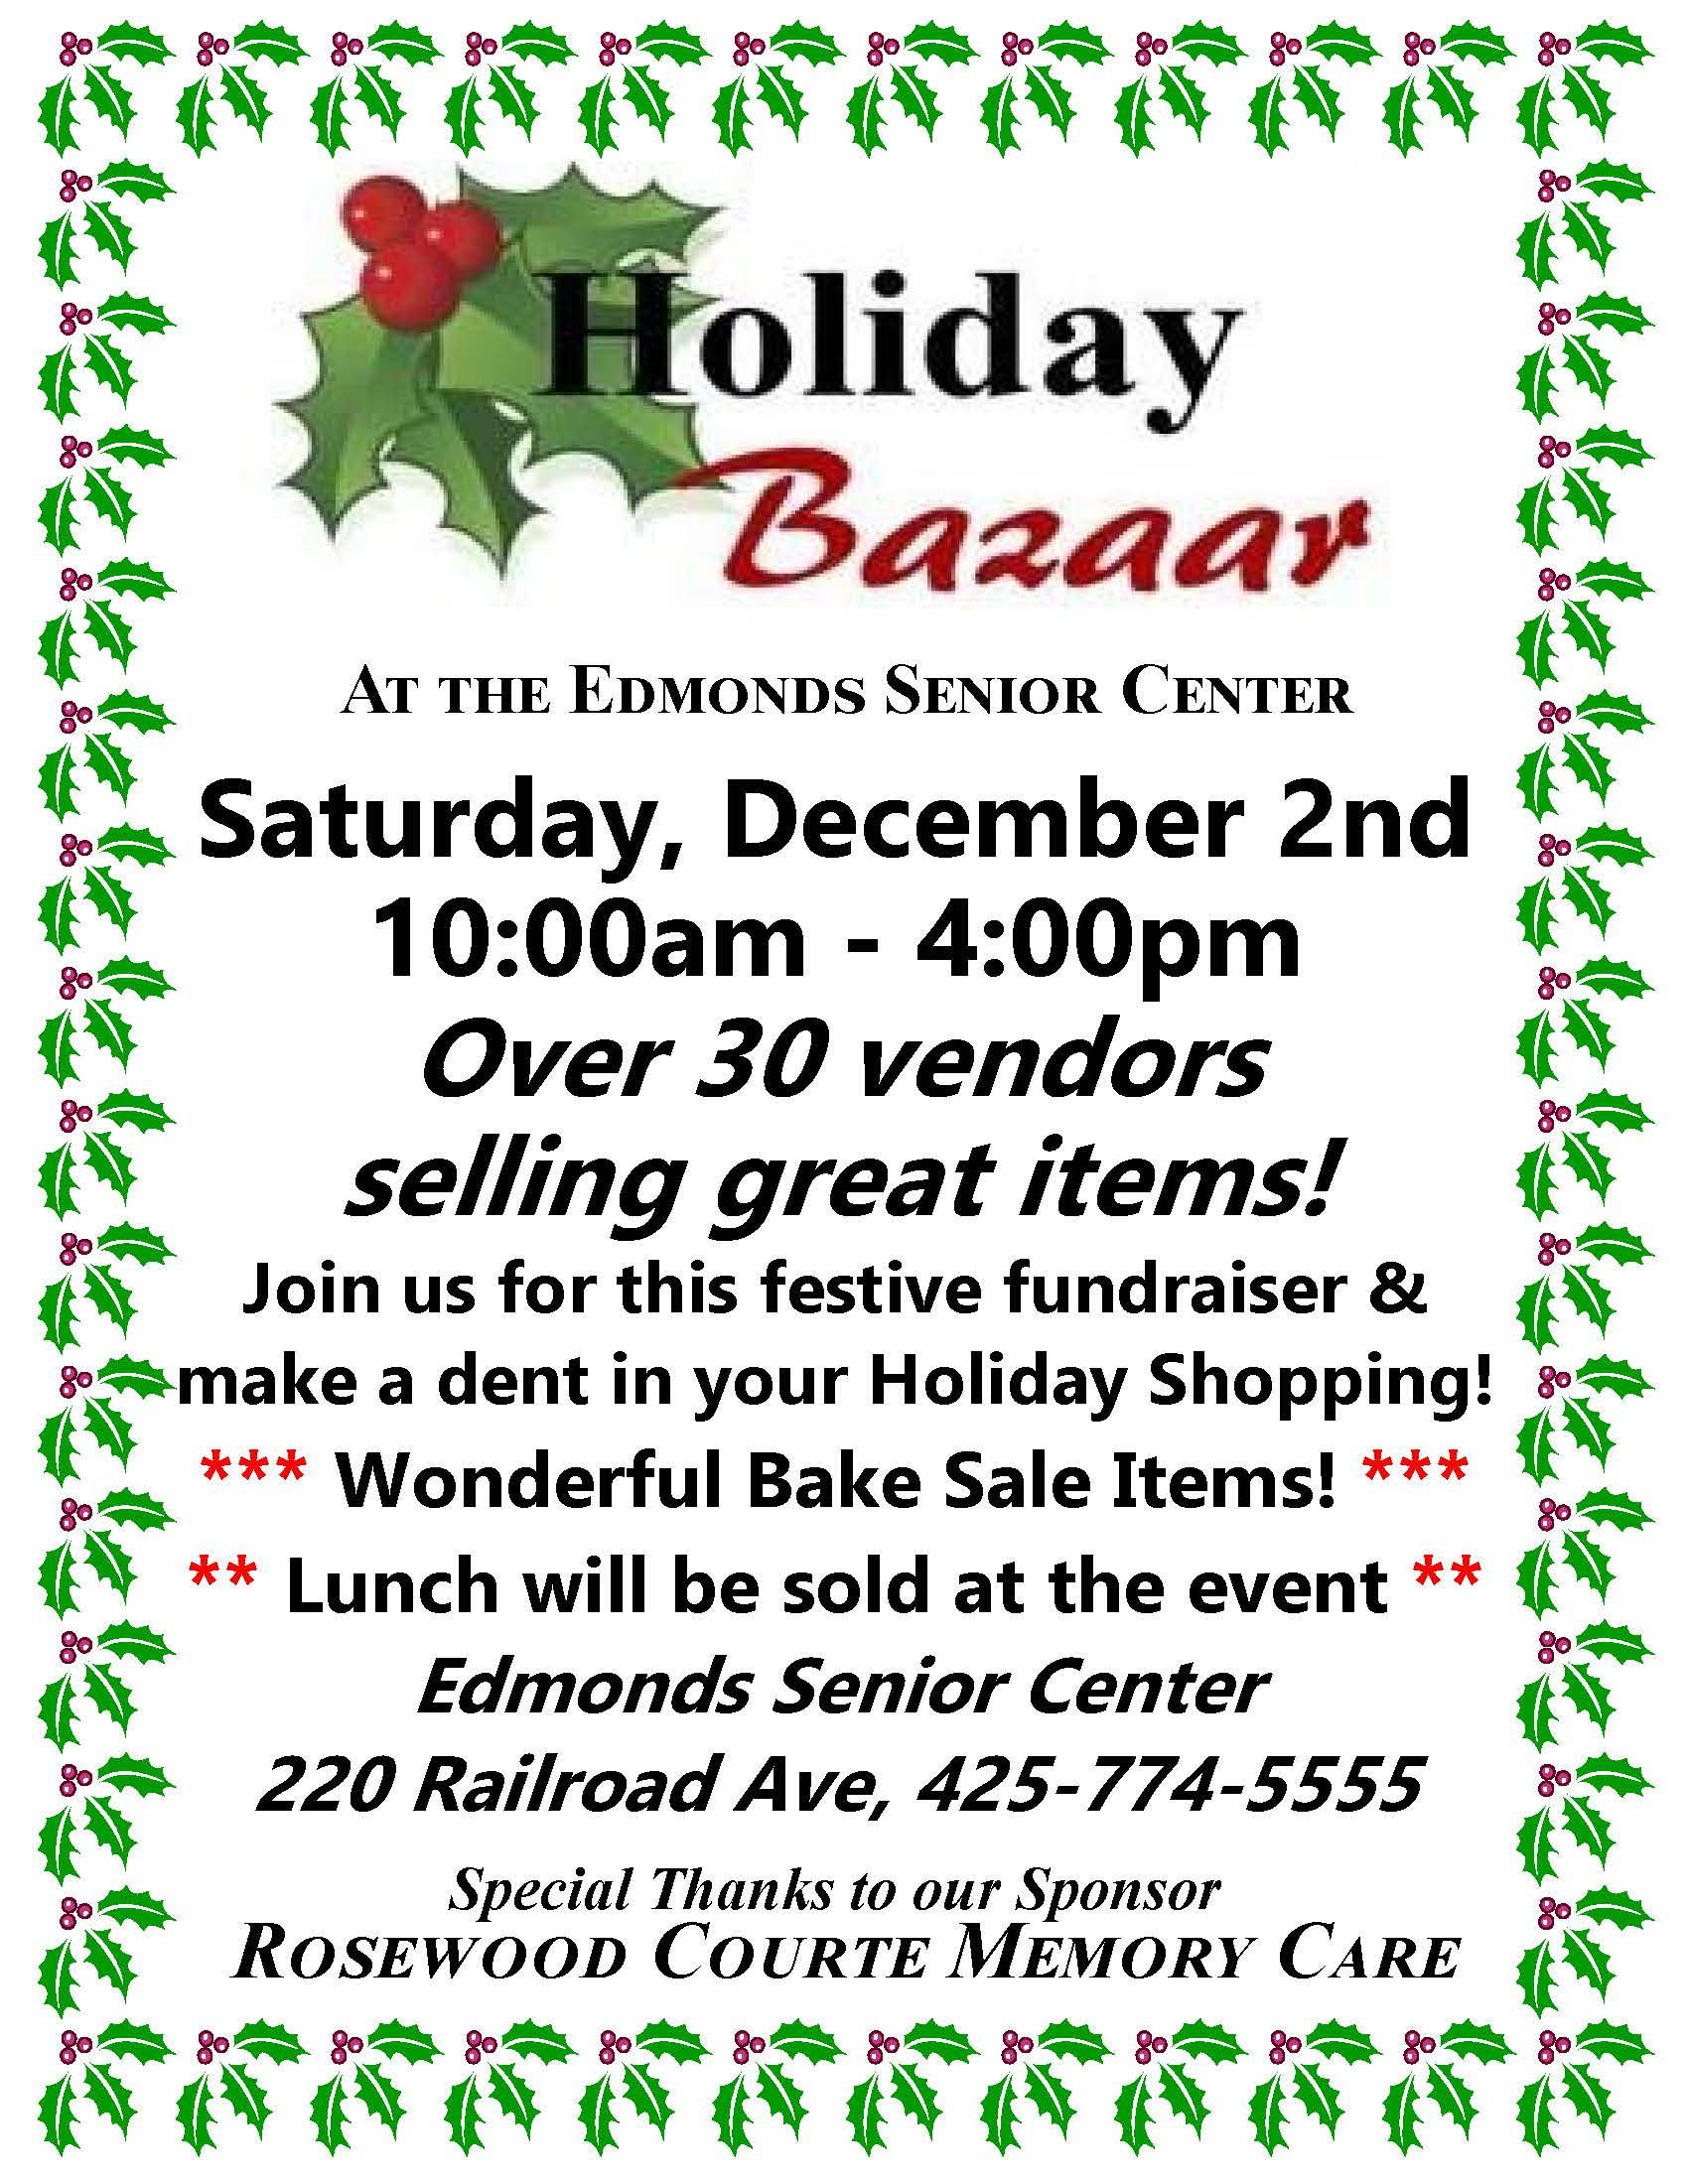 2017 holiday bazaar flyer